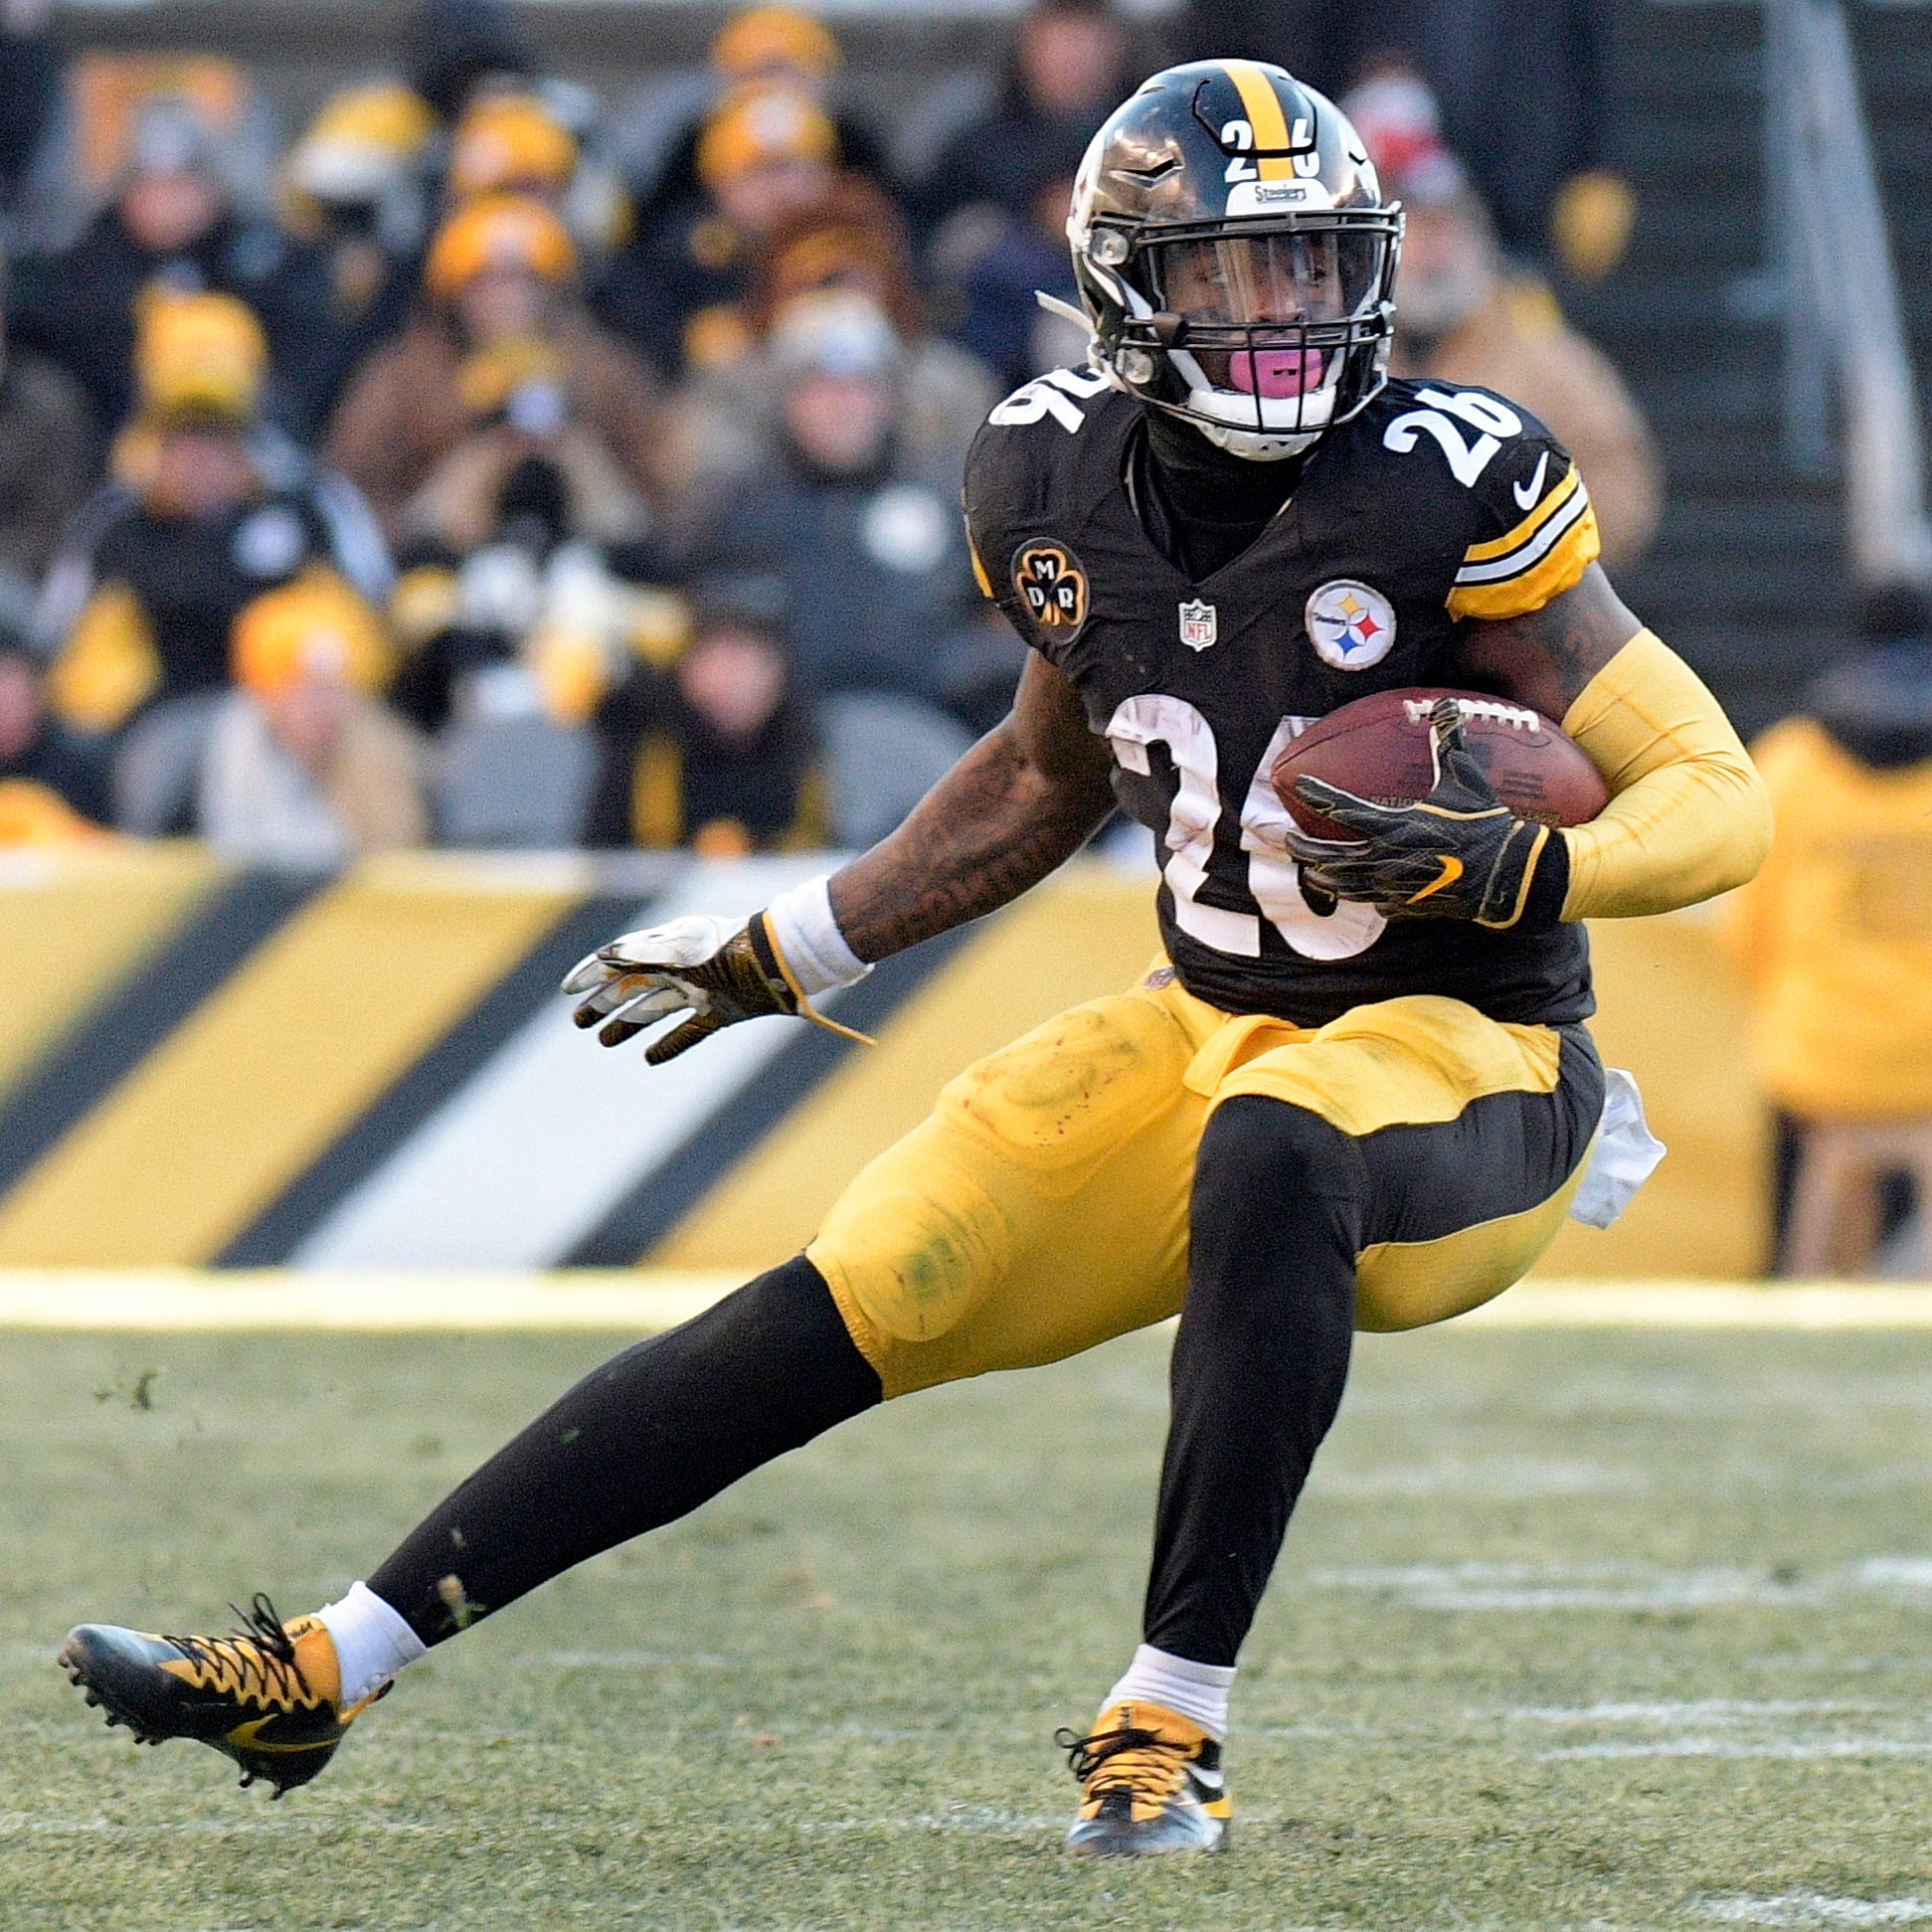 Wednesday's NFL: Le'Veon Bell 'back in the green,' headed to Jets